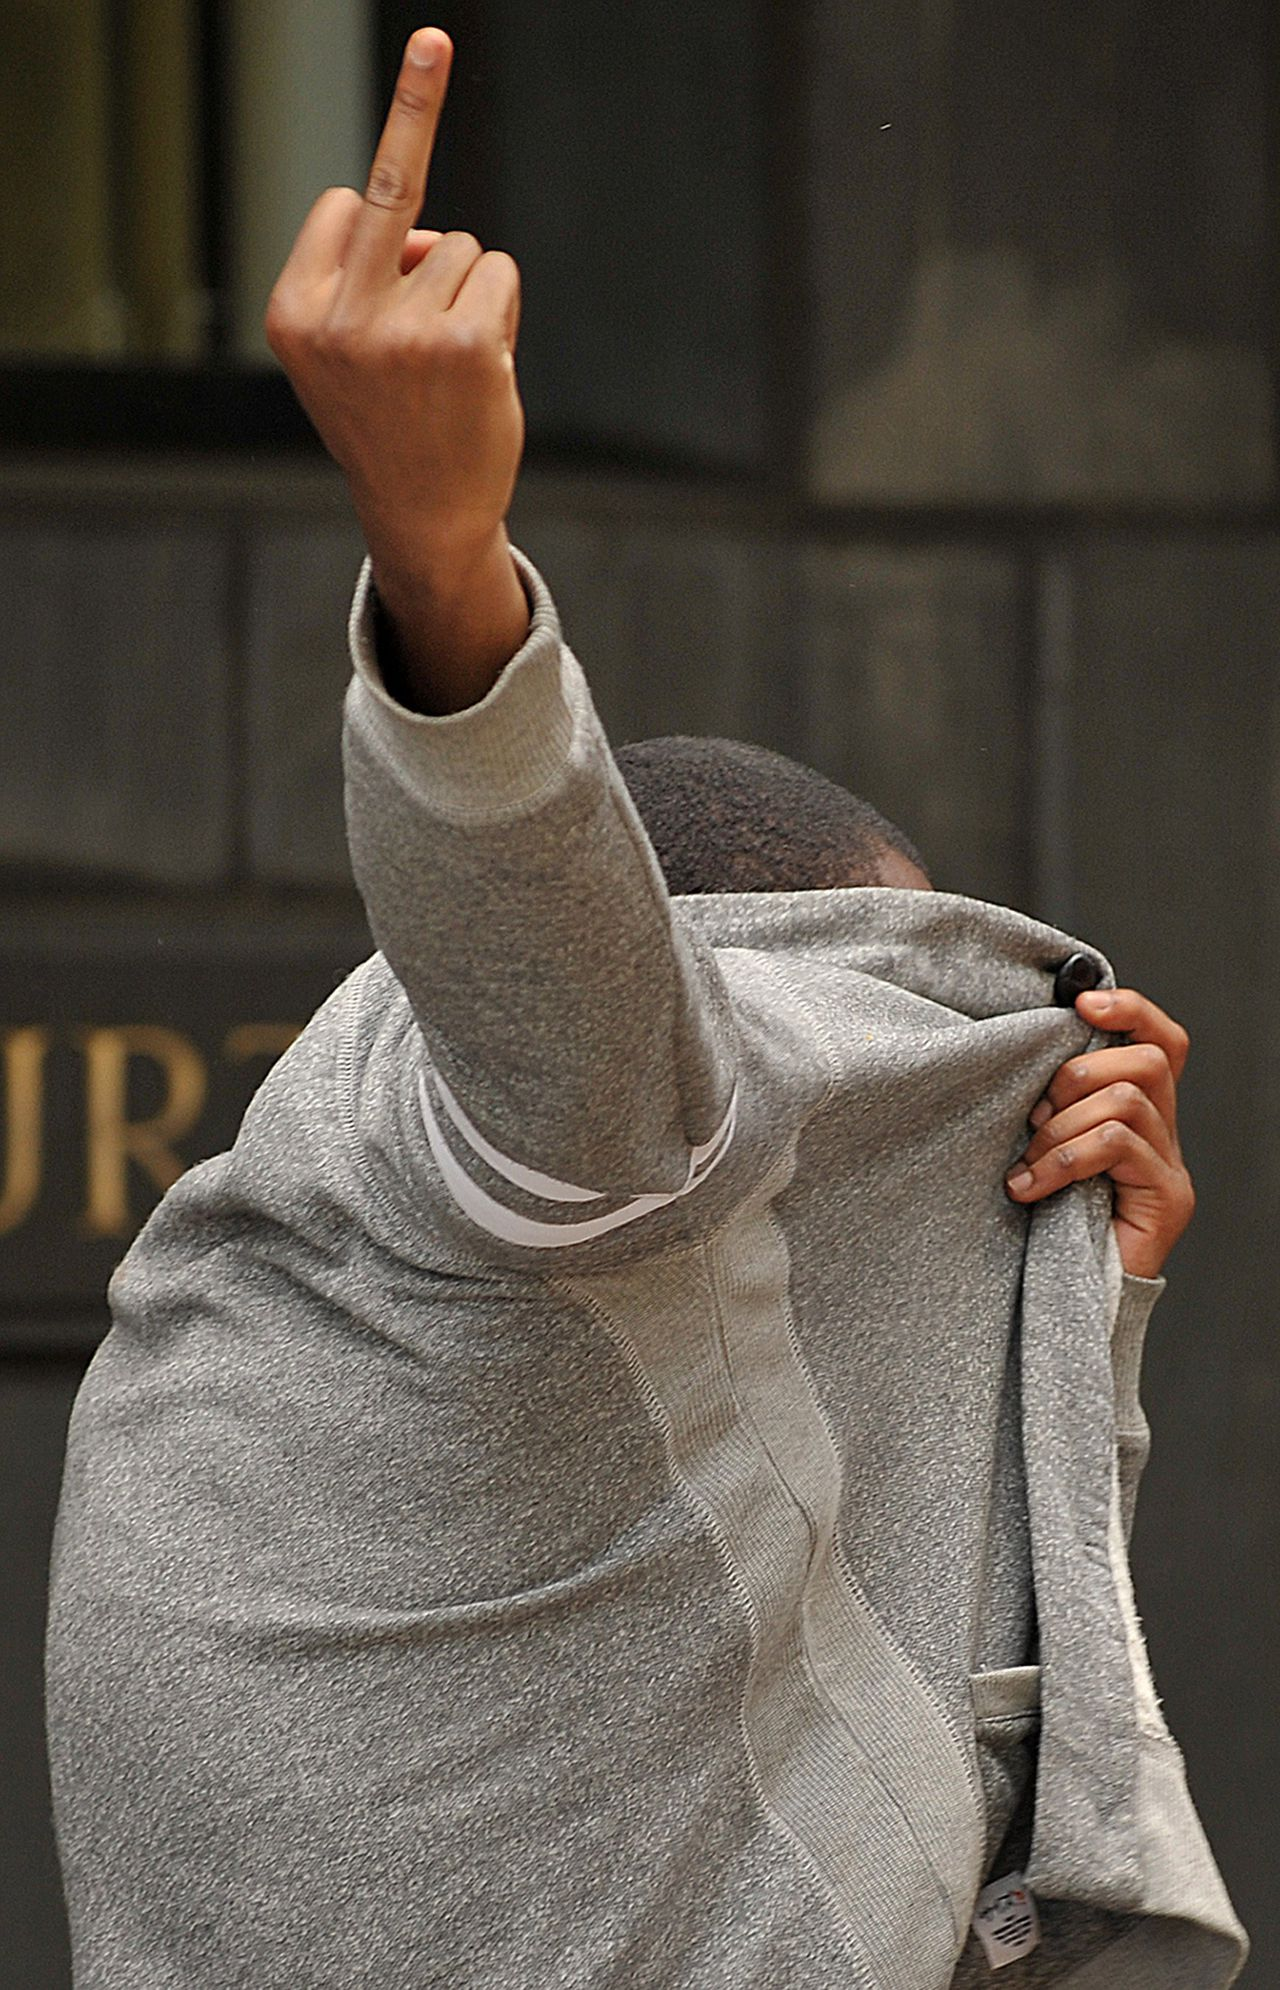 """A man believed to have taken part in a recent riot in London leaves Highbury Corner Magistrates Court in east London, on August 10, 2011. The court is one of four in London processing hundreds of people charged in connection with the recent riots in the city. Meanwhile Prime Minister David Cameron said a """"fightback"""" had begun Wednesday against Britain's worst riots in a generation, as he authorised the use of water cannon for the first time outside Northern Ireland. AFP PHOTO / BEN STANSALL"""